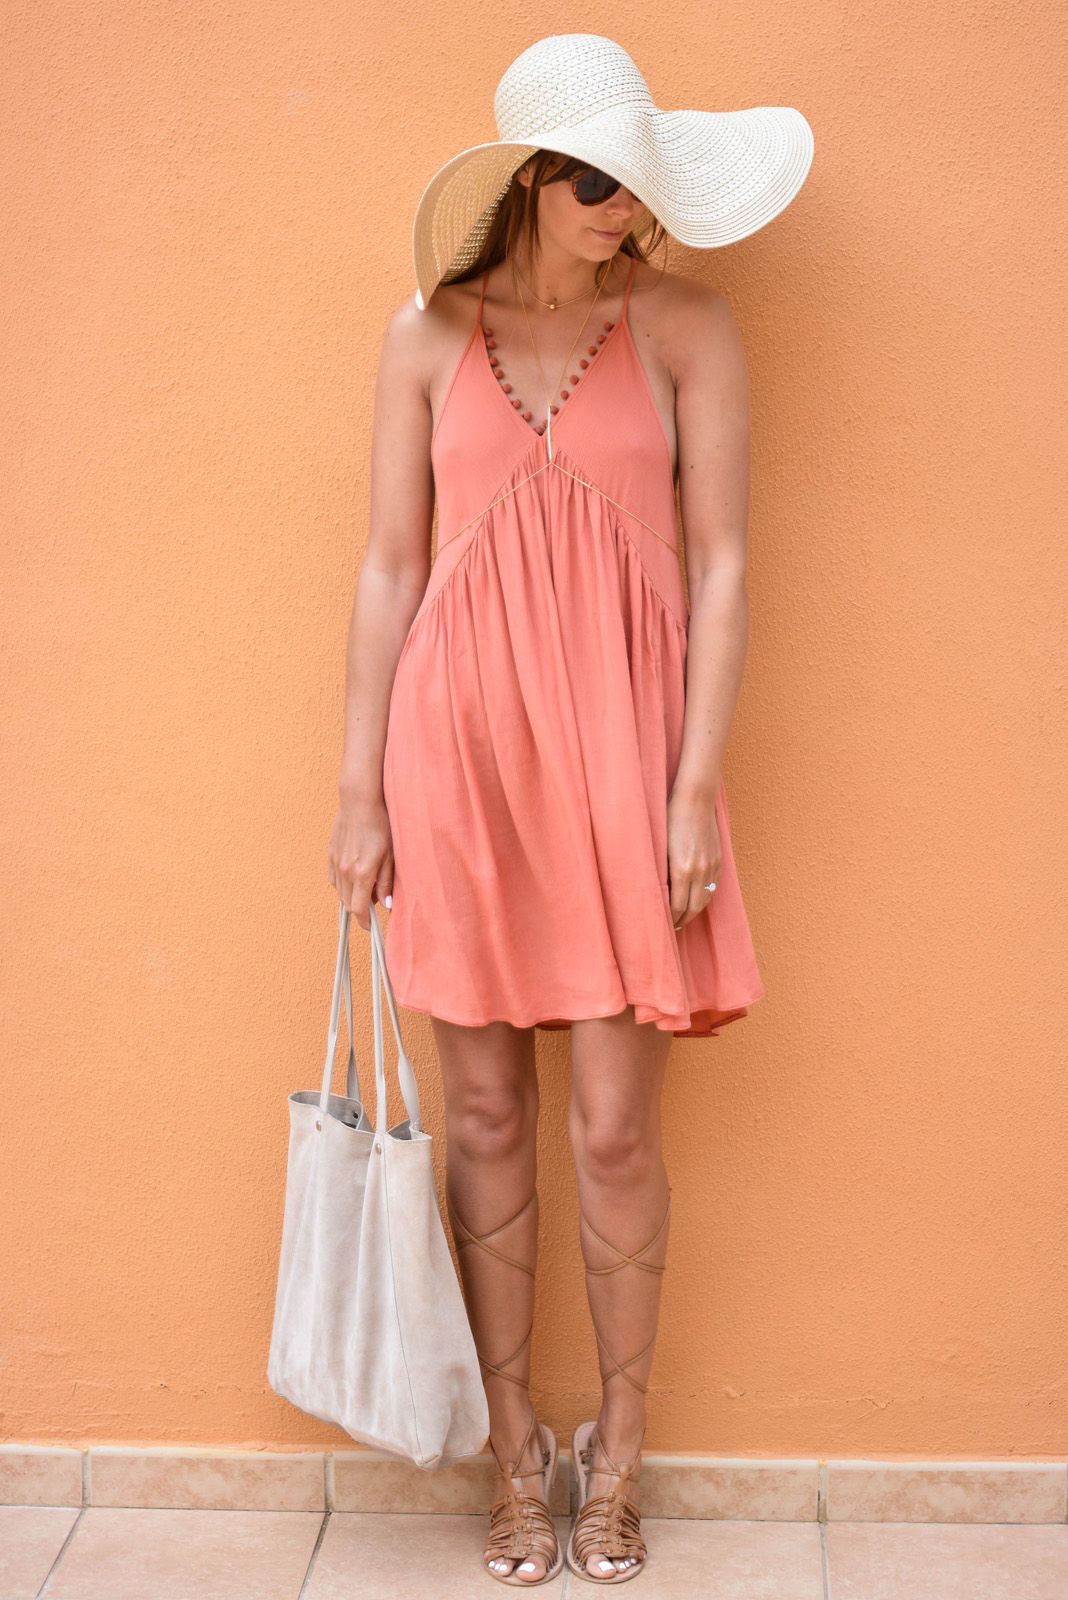 EJSTYLE - Emma Hill wears asos terracotta pom pom trim summer dress, large asos floppy straw sun hat, ASOS tan grecian gladiator sandals, ASOS beige suede bag, asos gold body harness, asseenonme